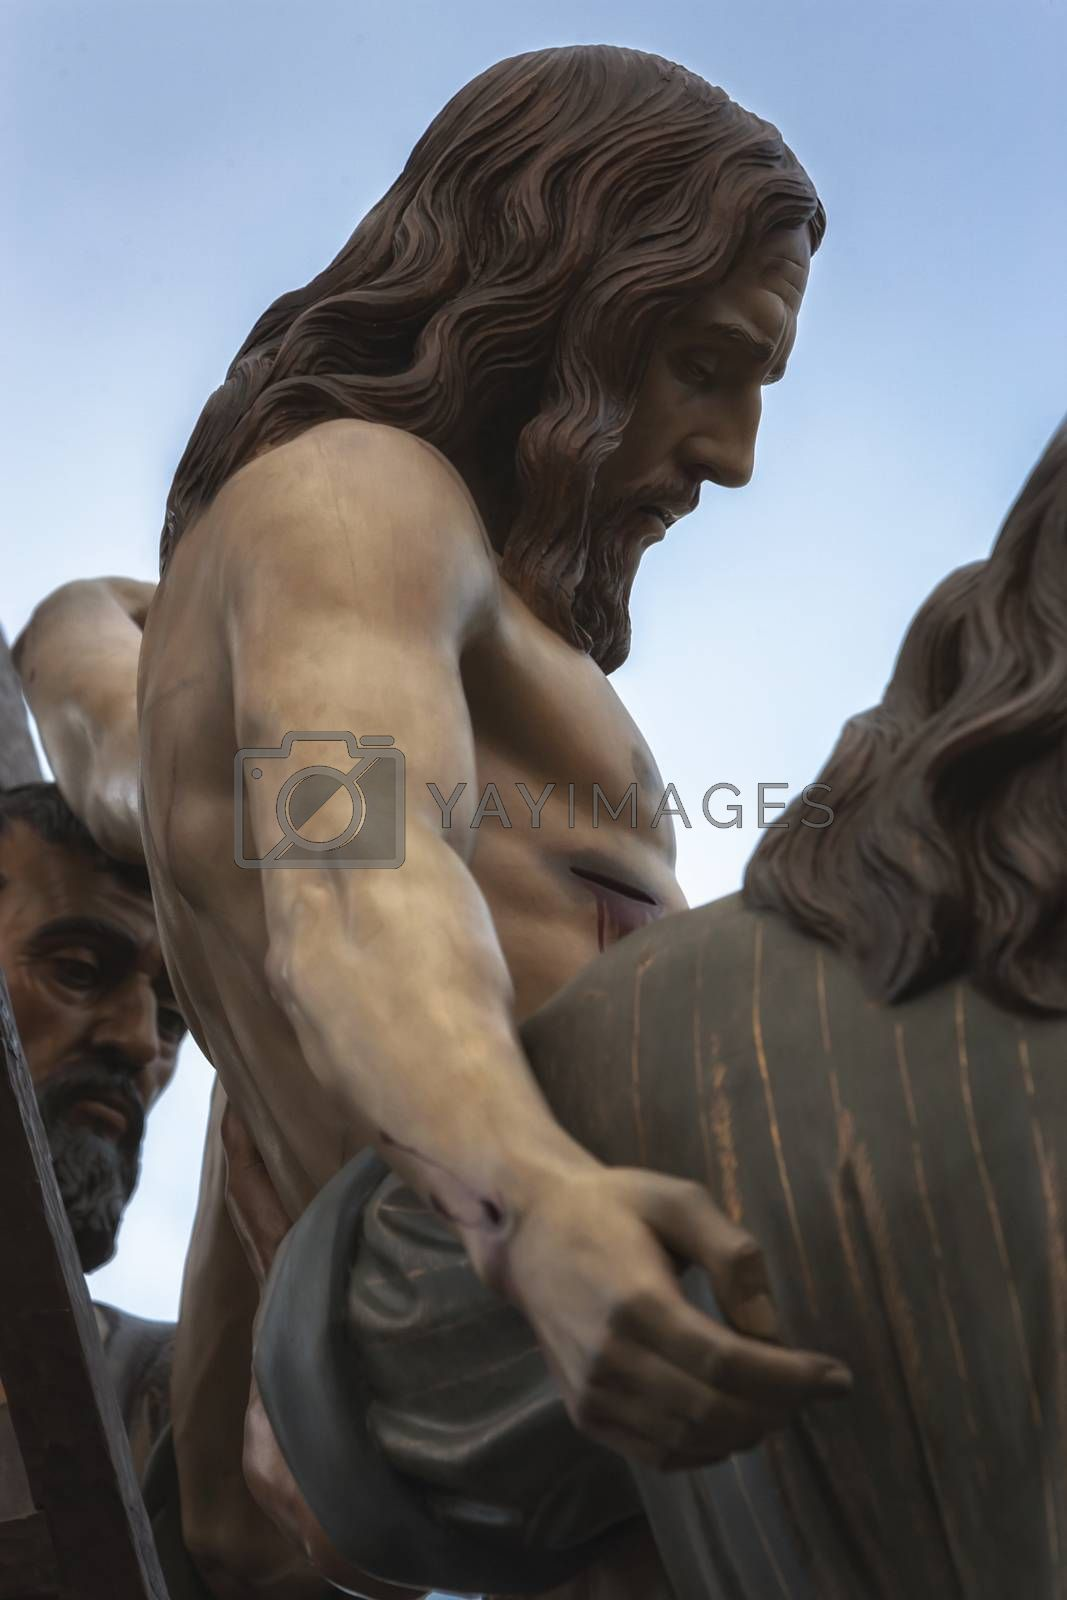 Royalty free image of Brotherhood of the Holy Christ of the descent, Linares, Jaen province, Andalusia, Spain by digicomphoto